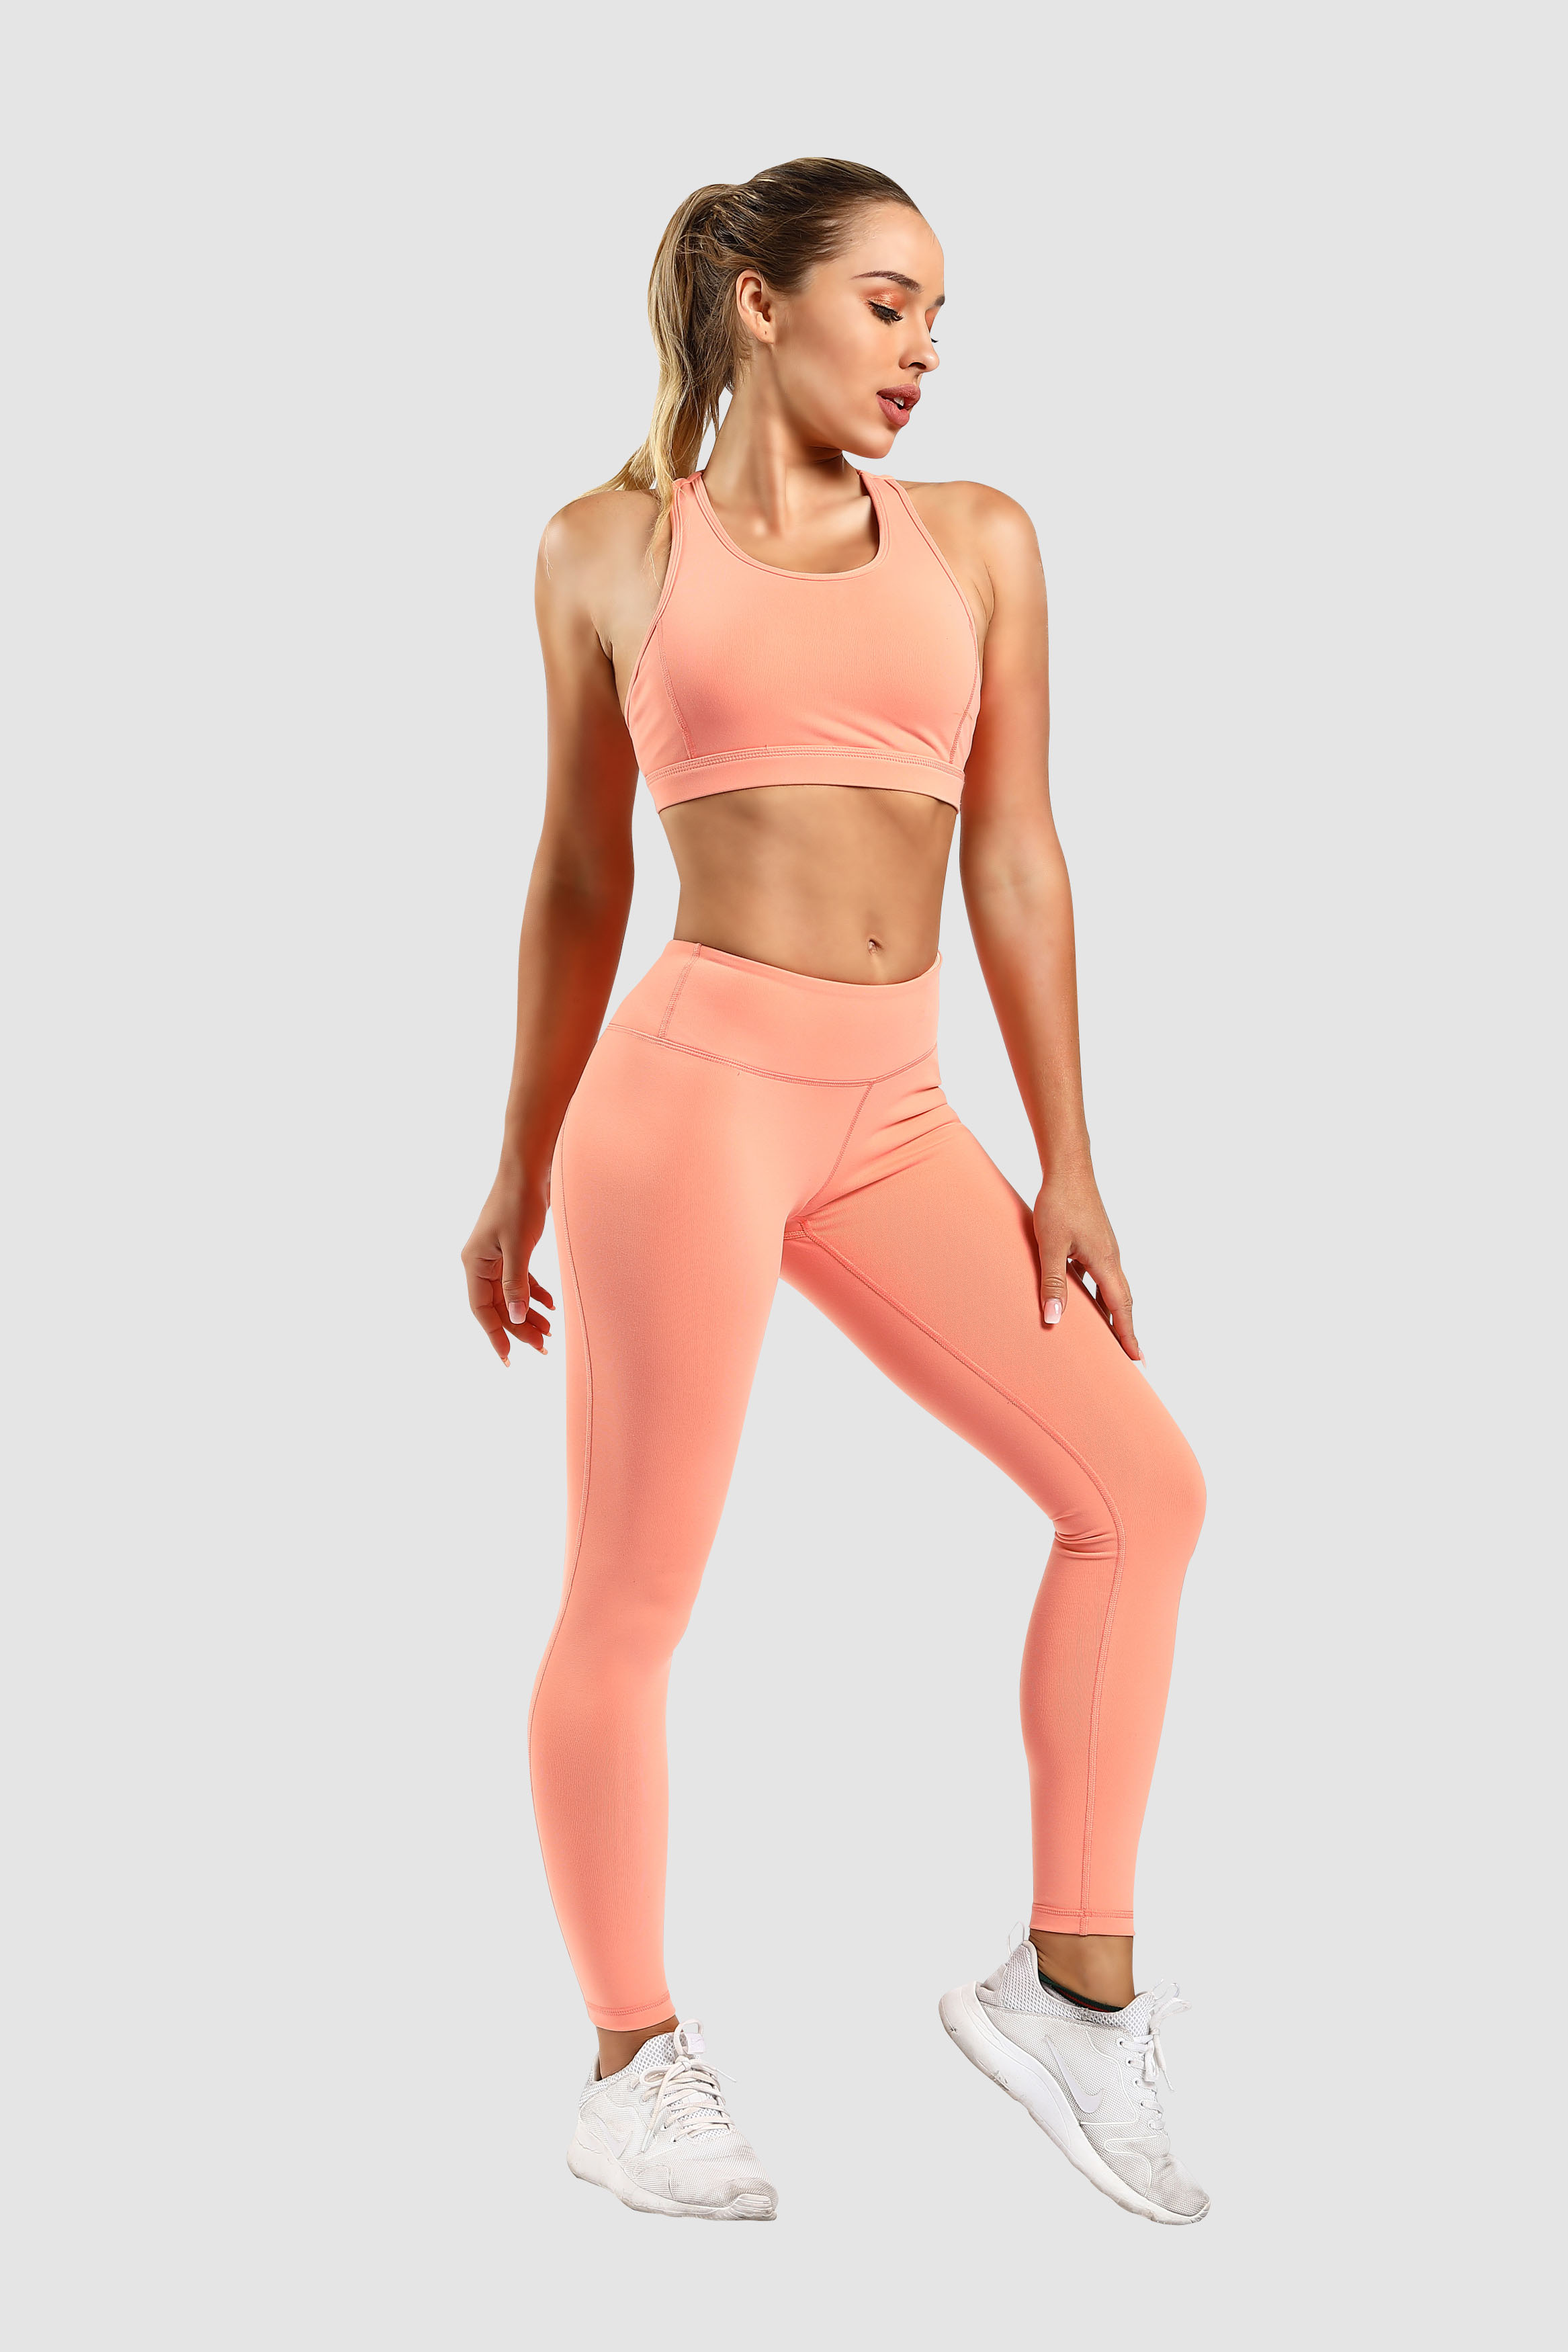 MIQI Private label women solid color running wear sexy leggings yoga fitness set